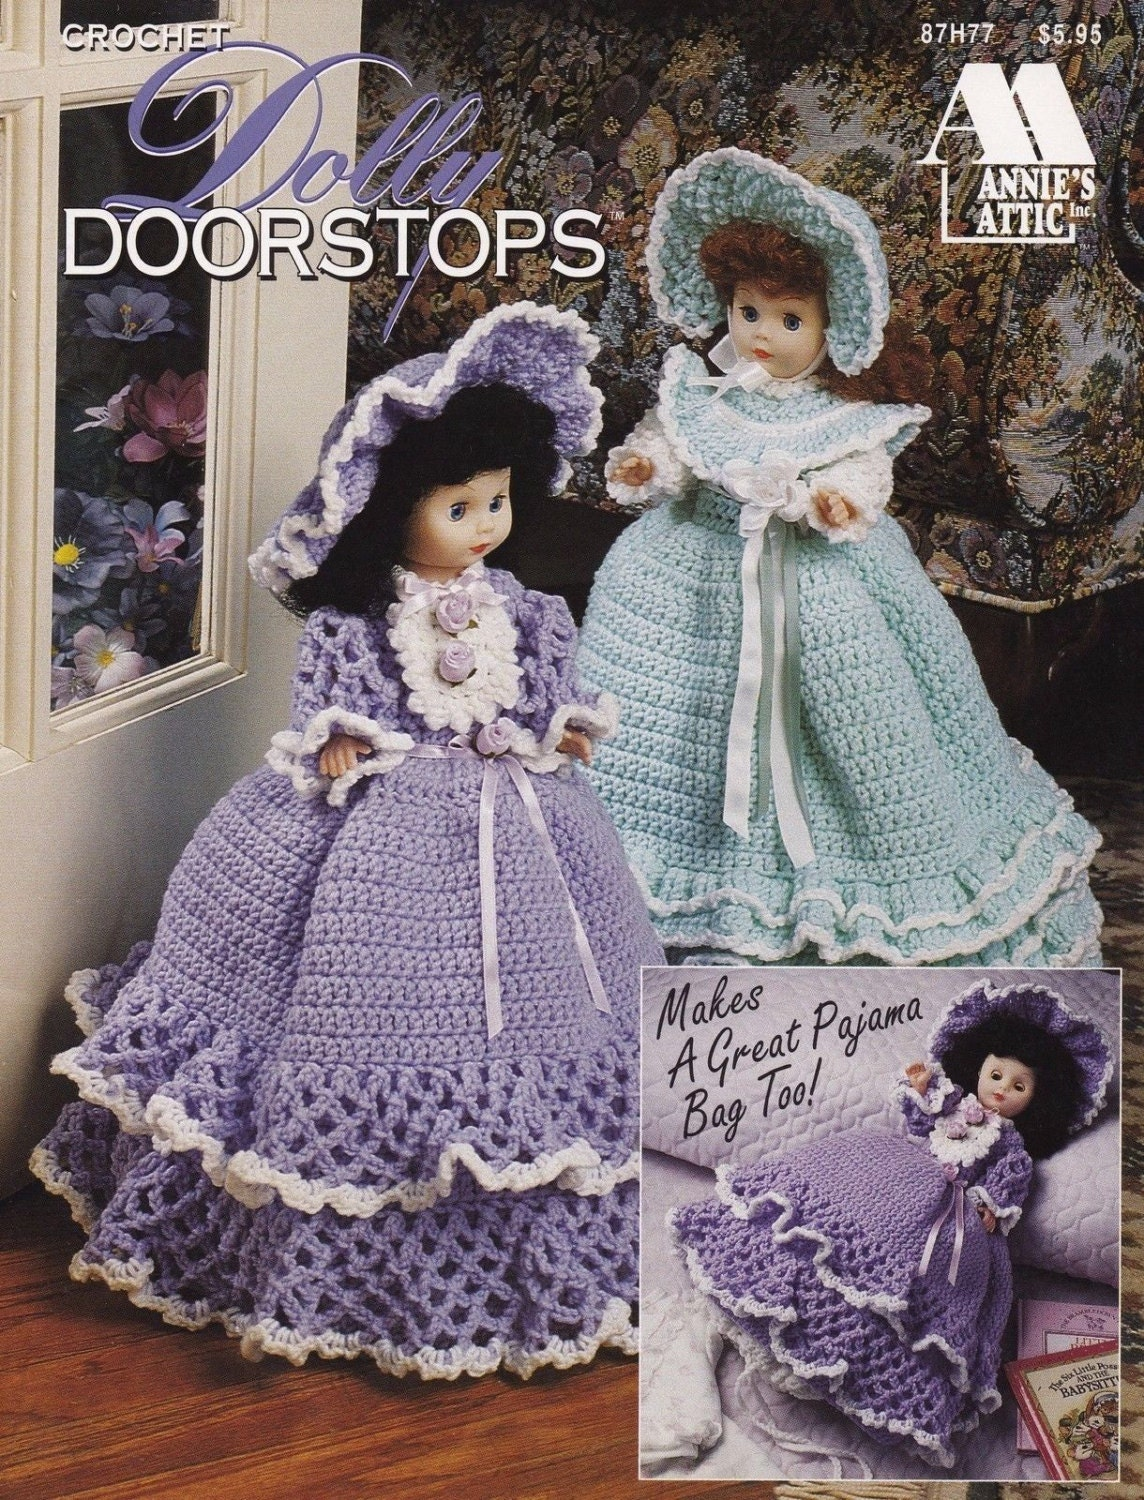 Dolly Doorstops Annie S Attic Doll Clothes Home Decor